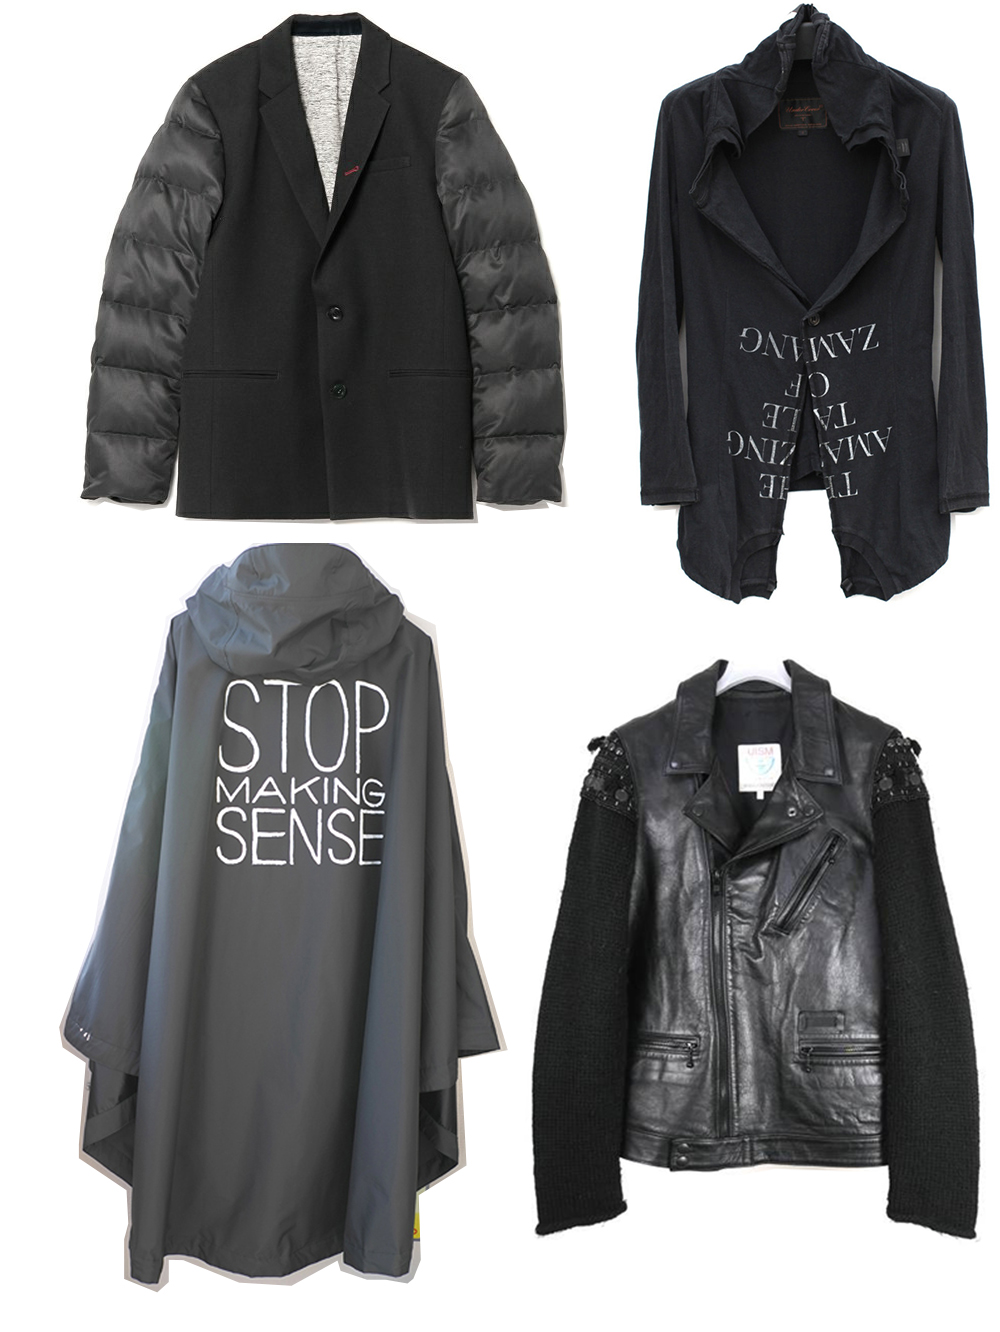 Tuukka13 - Inspiration - Undercoverism Jackets - Mood Board - 3